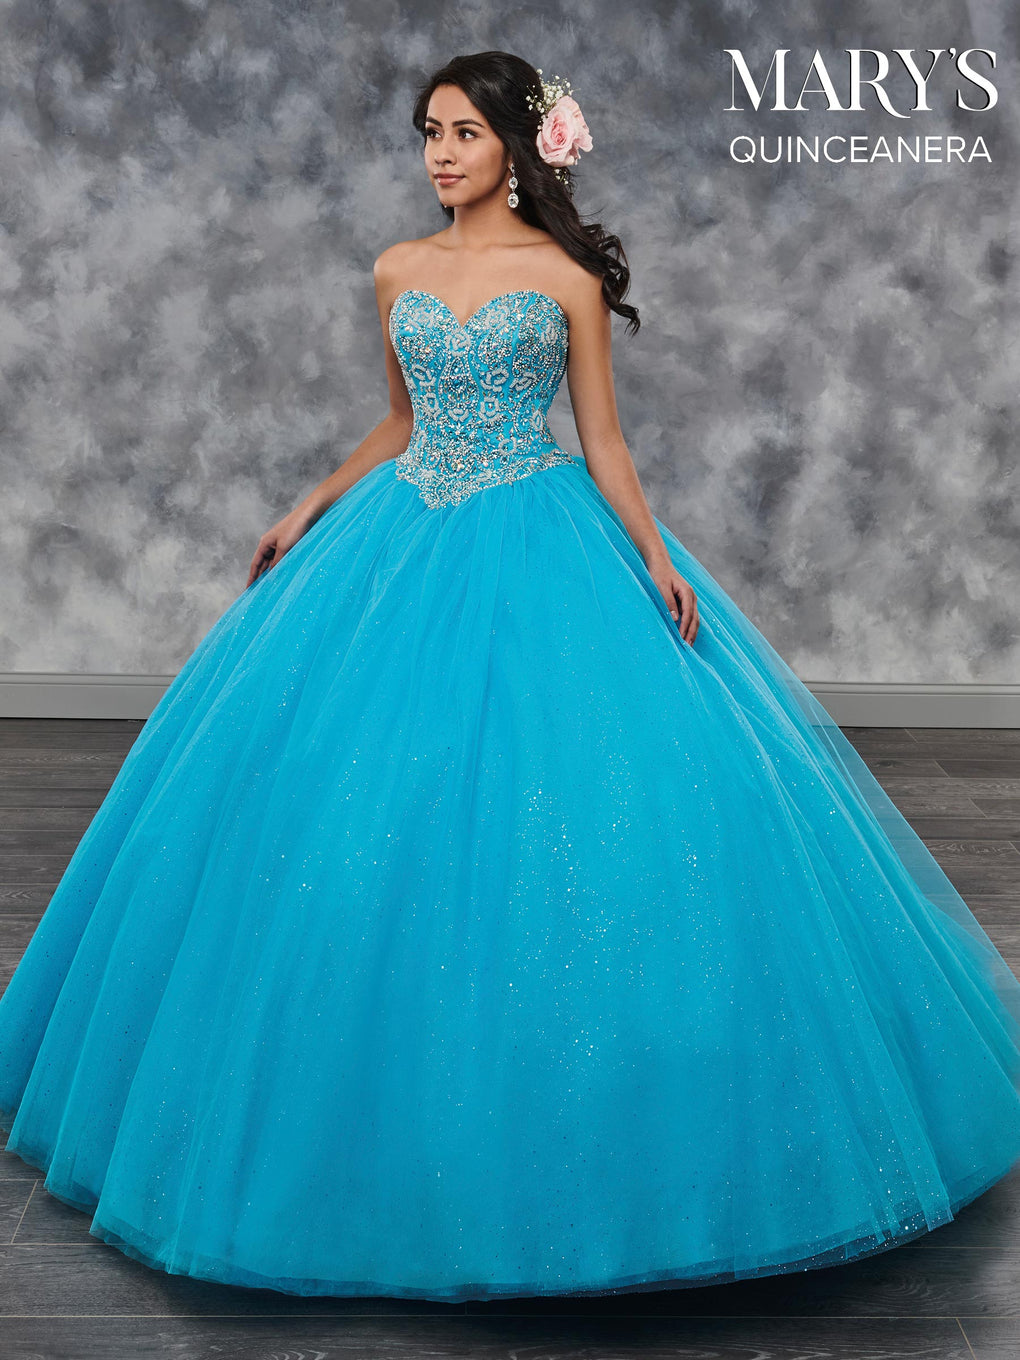 Marys Quinceanera Dresses in Burgundy, Light Blue, Turquoise, Gold, or White Color